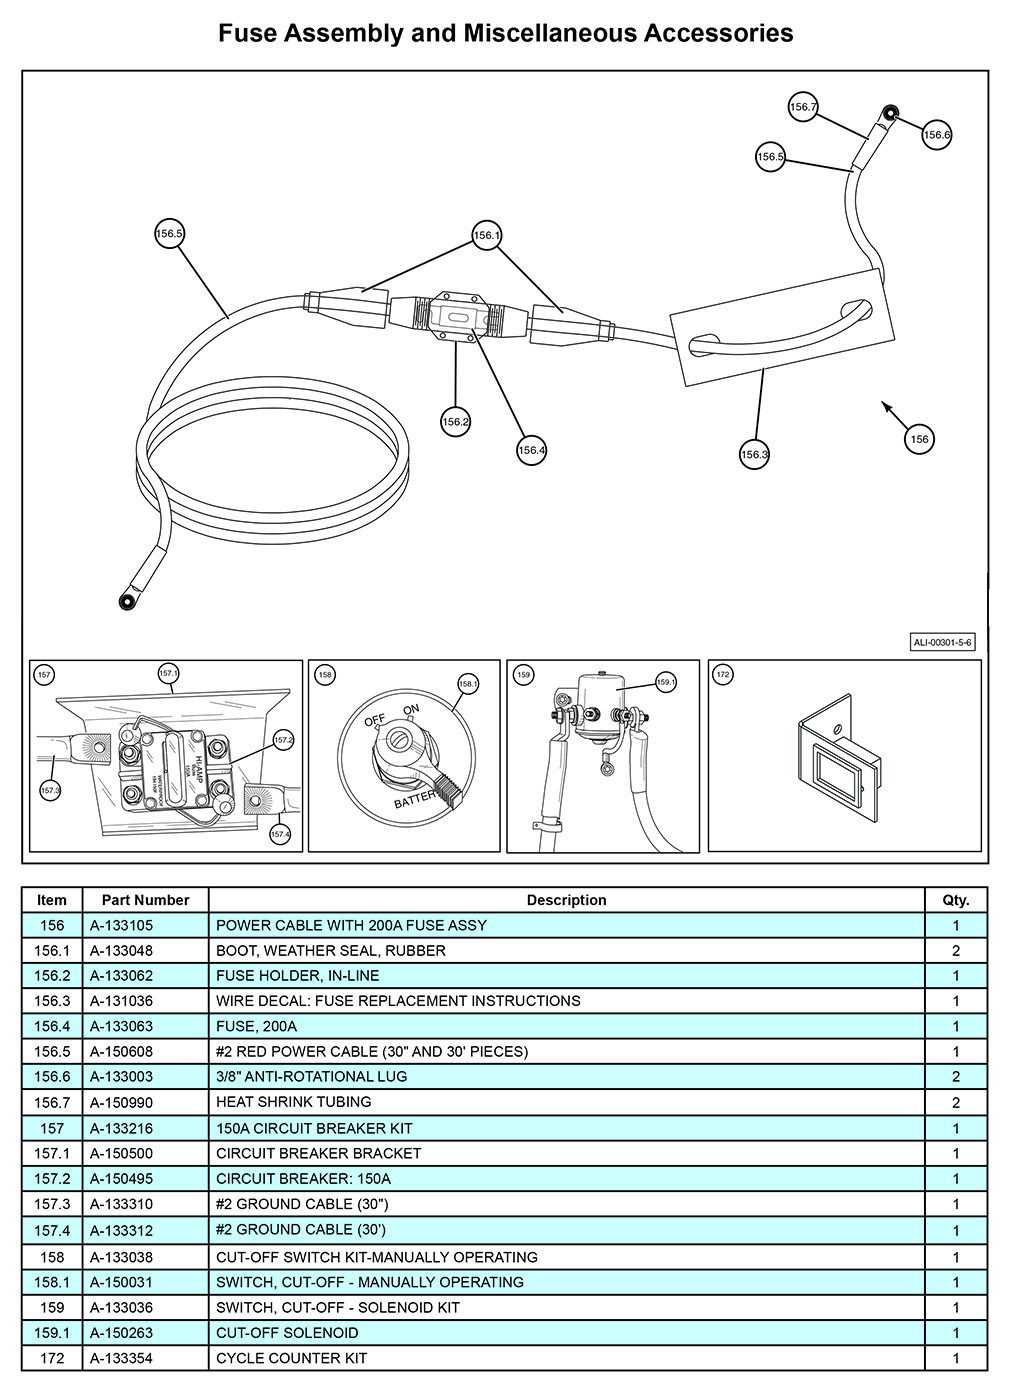 MTU-GLR-5-6 Fuse Assembly and Miscellaneous Accessories Diagram